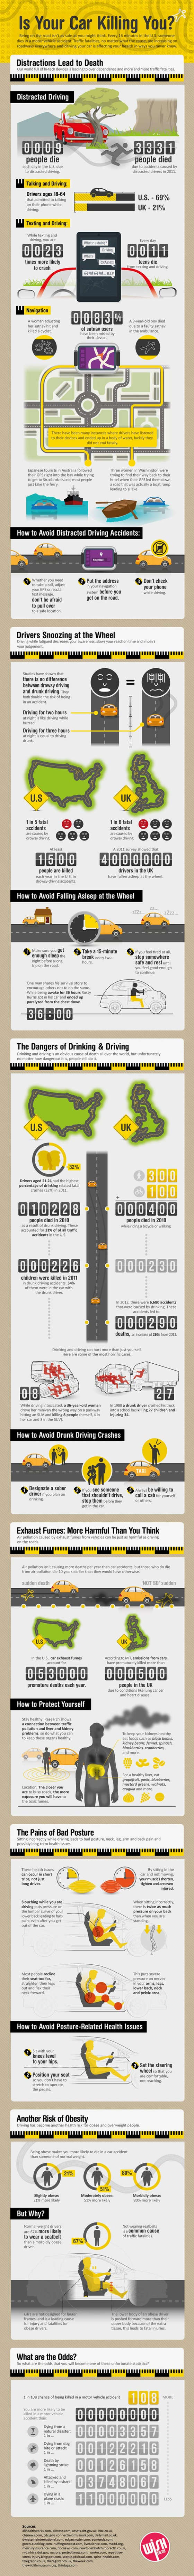 Is Your Car Killing You (2)